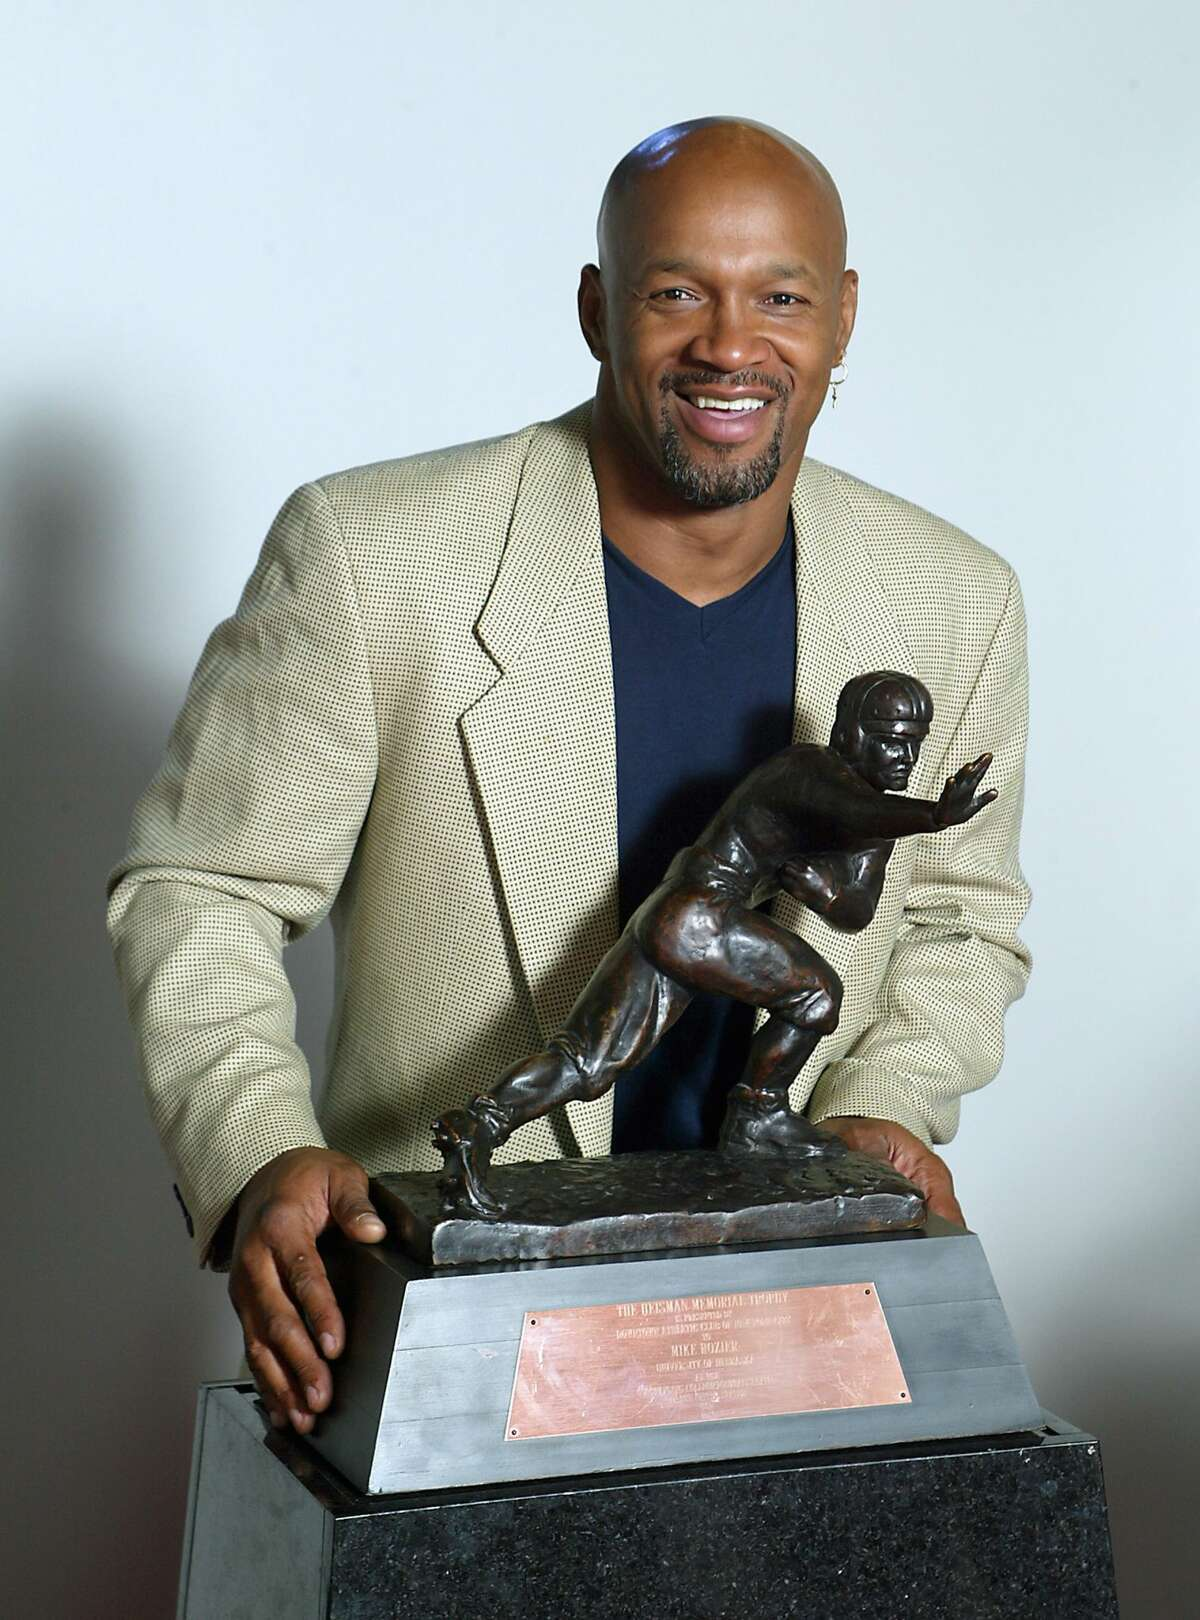 LINCOLN, NE- 1983: Mike Rozier #30 of the University of Nebraska Cornhuskers poses with his Heisman Trophy in Lincoln, Nebraska. (Photo by Nebraska/Collegiate Images/ Getty Images)